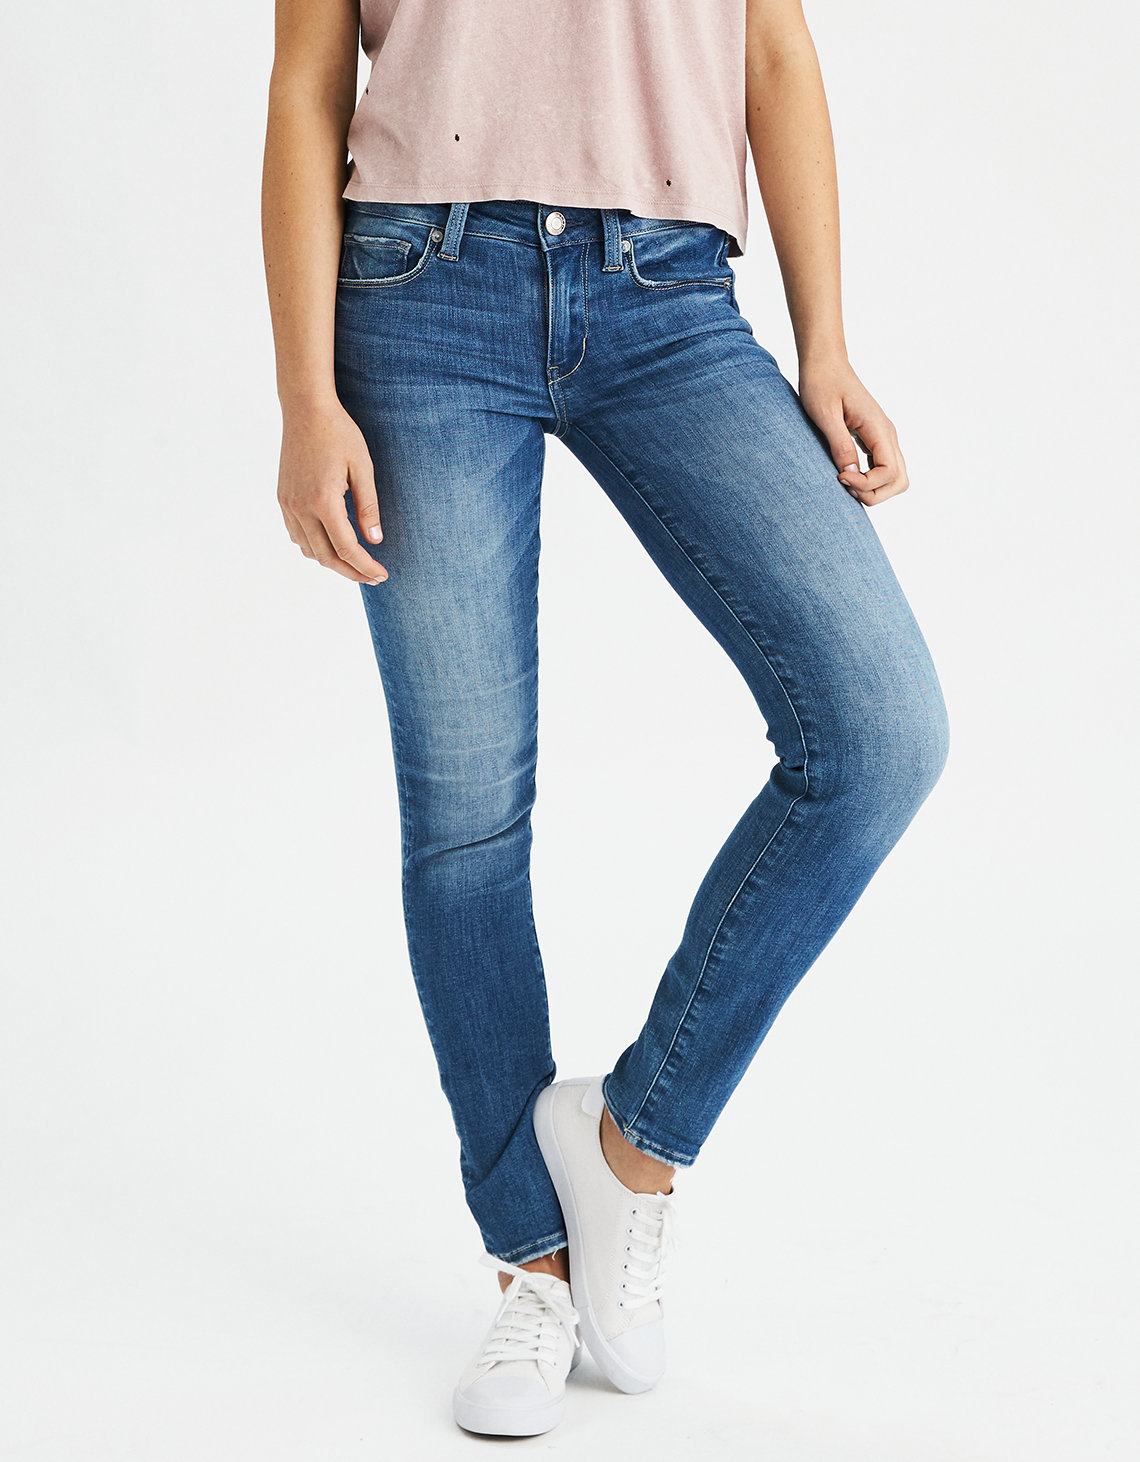 High waisted black skinny jeans american eagle